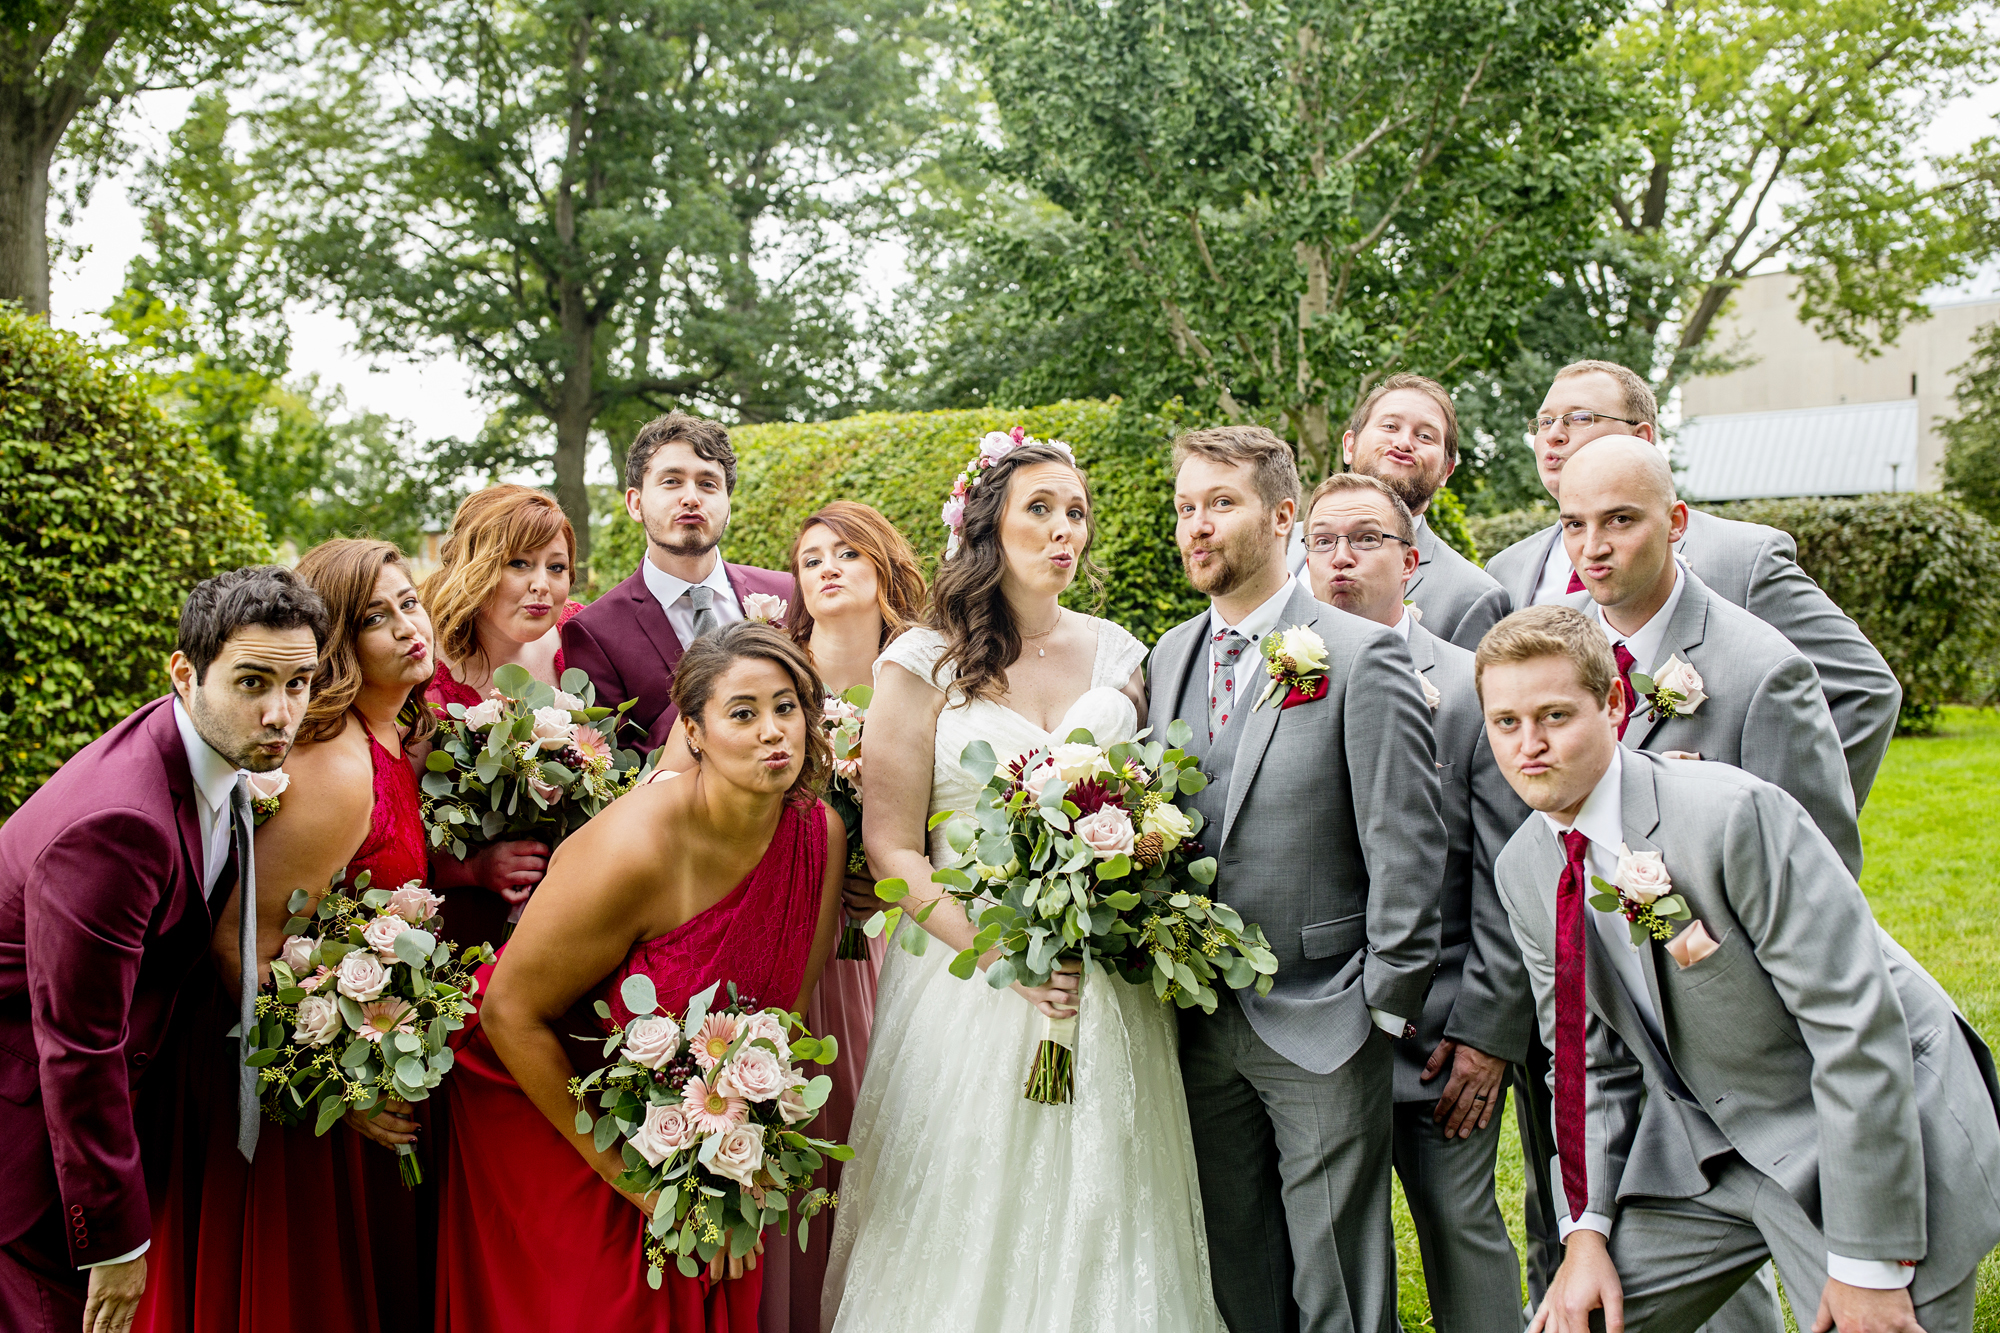 Seriously_Sabrina_Photography_Lisle_Illinois_Morton_Arboretum_Wedding_Day_Gowen48.jpg